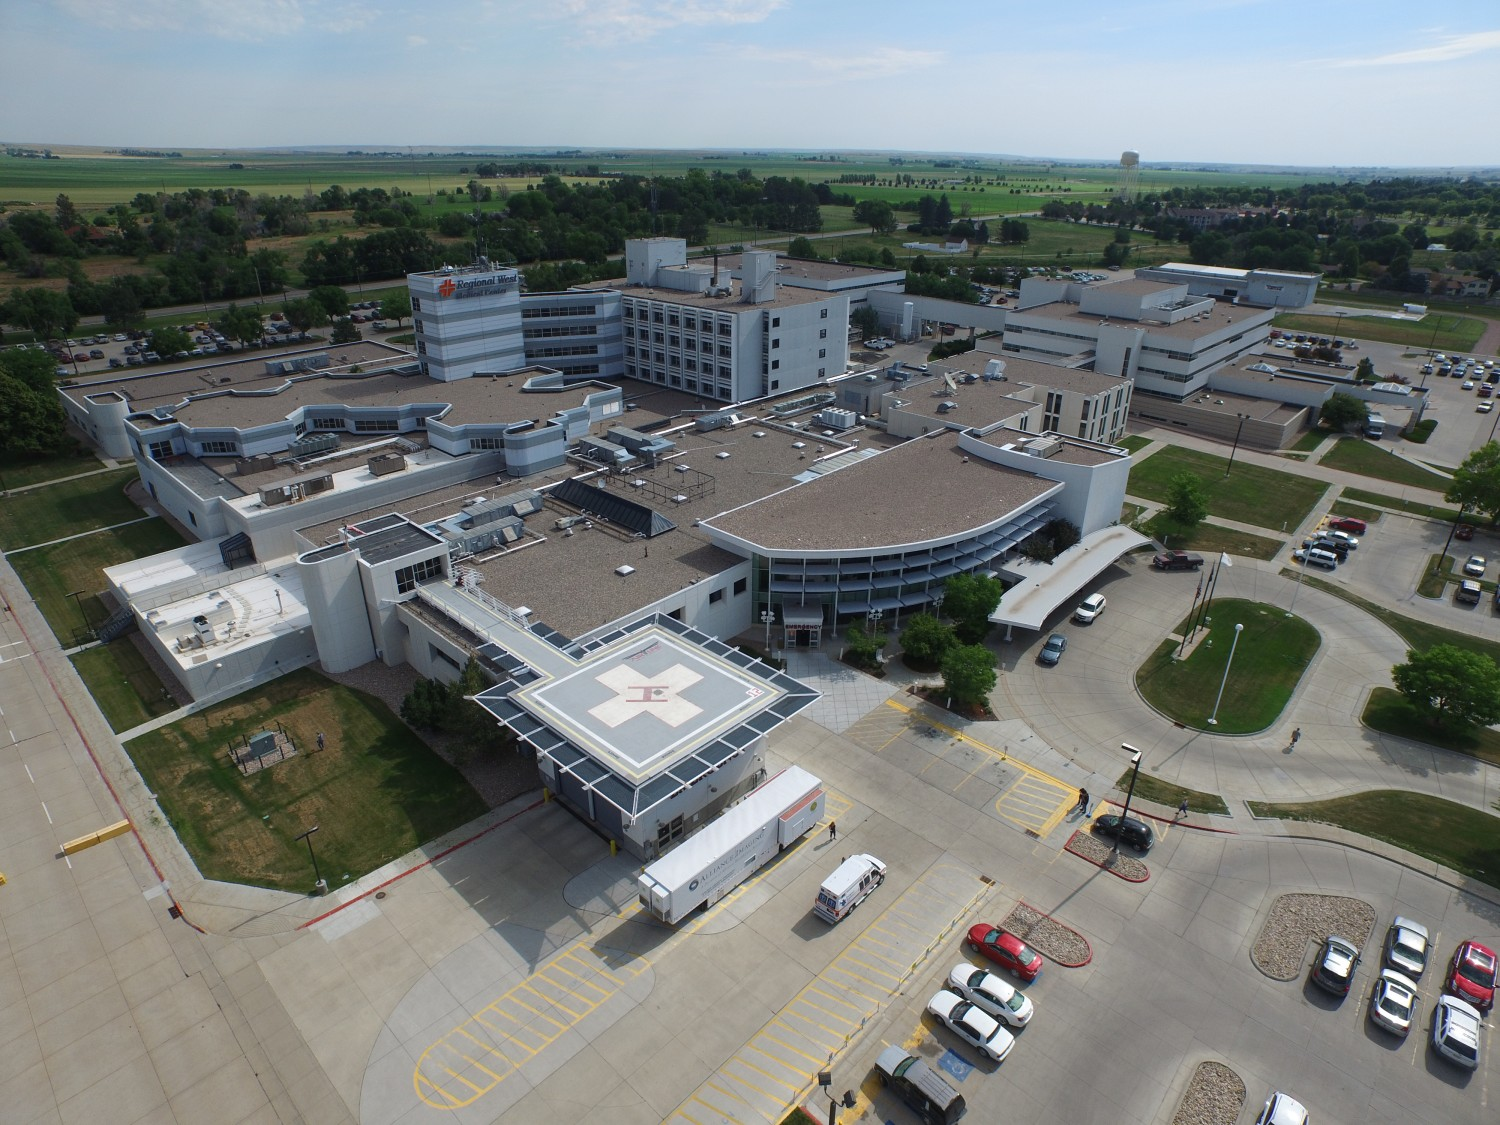 A  view of the Regional West Medical Center Campus